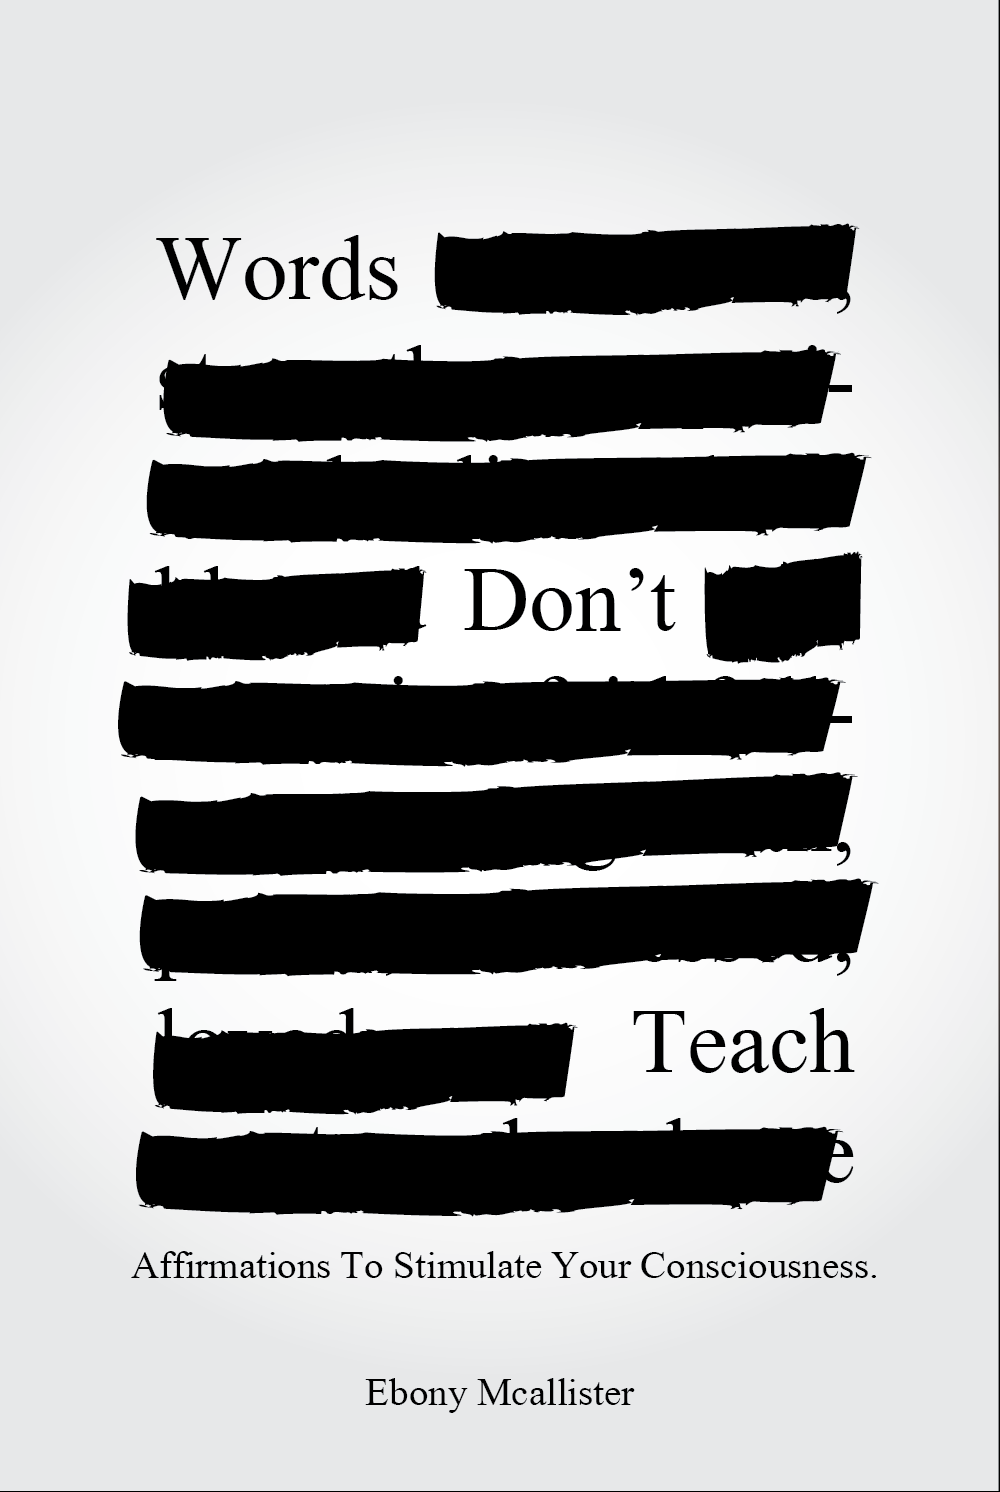 Words Don't Teach Cover Idea by A Mata Designs